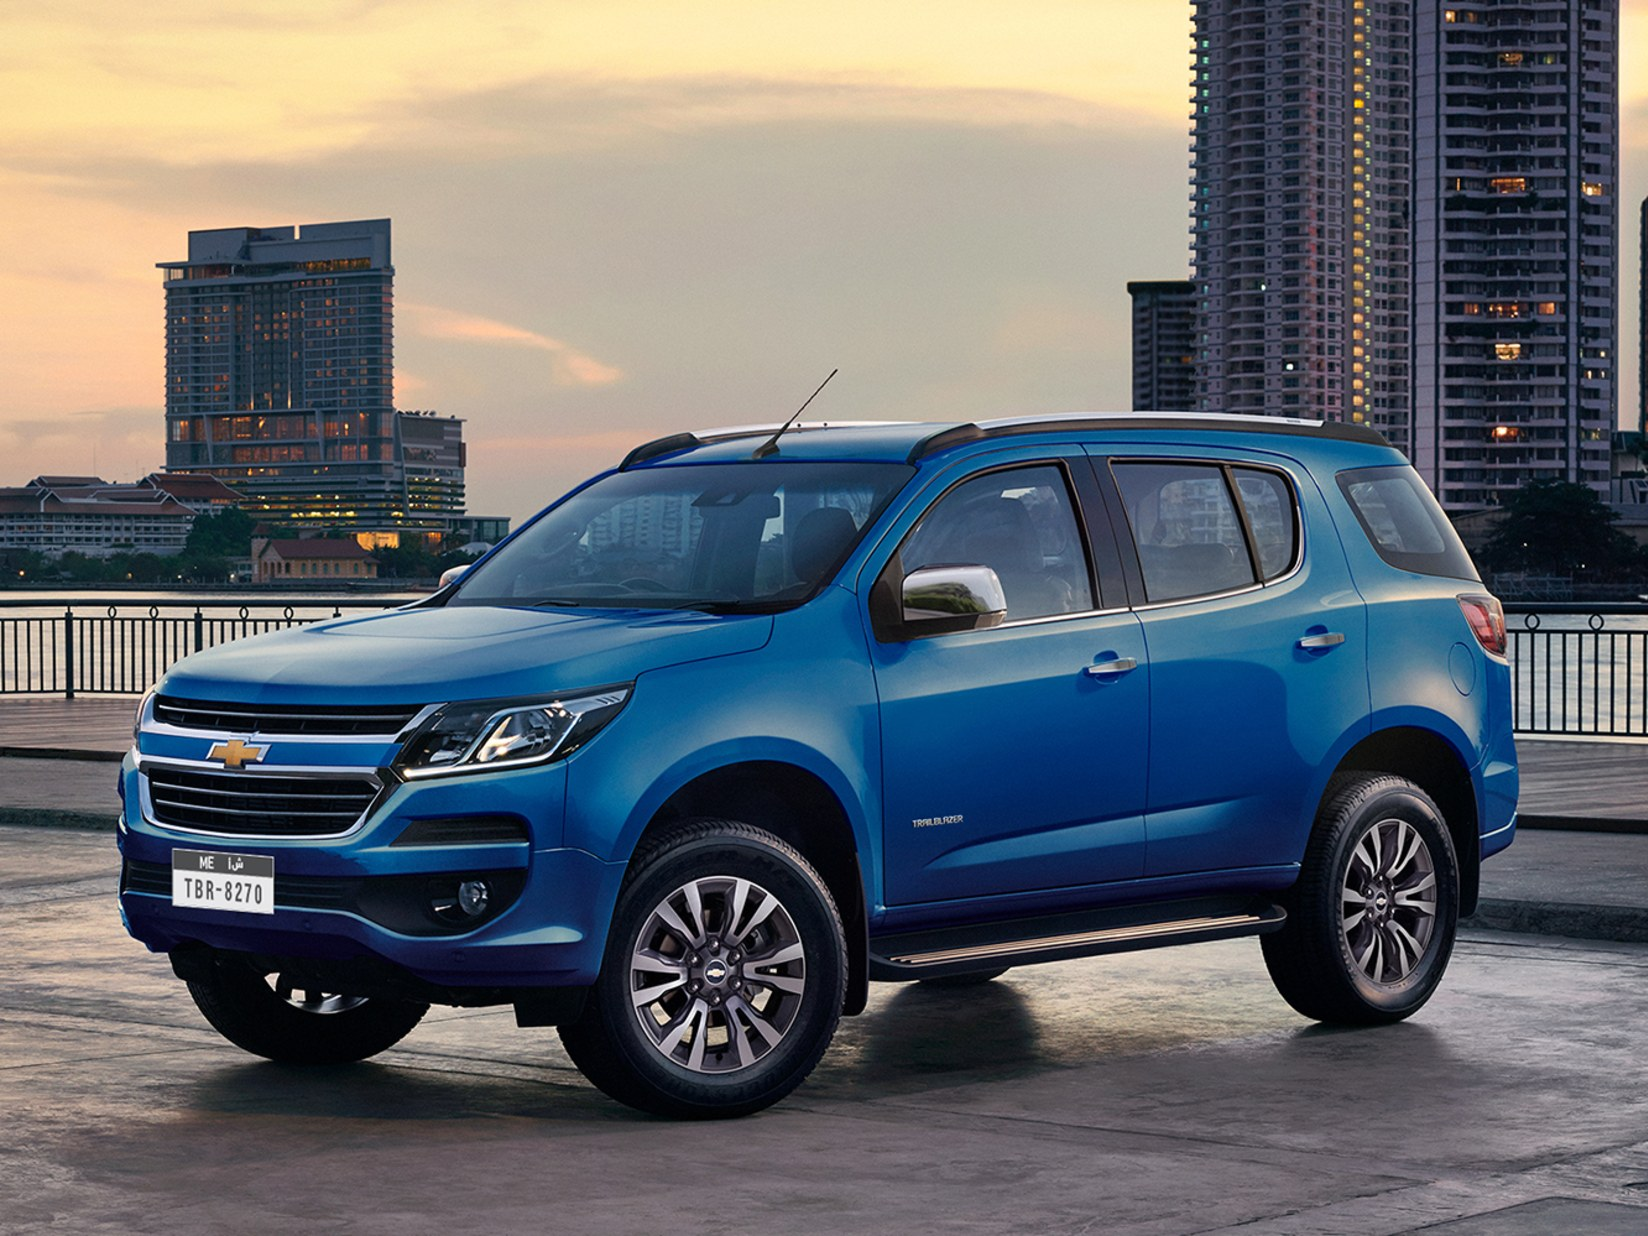 2020 Trailblazer Chevrolet Qatar